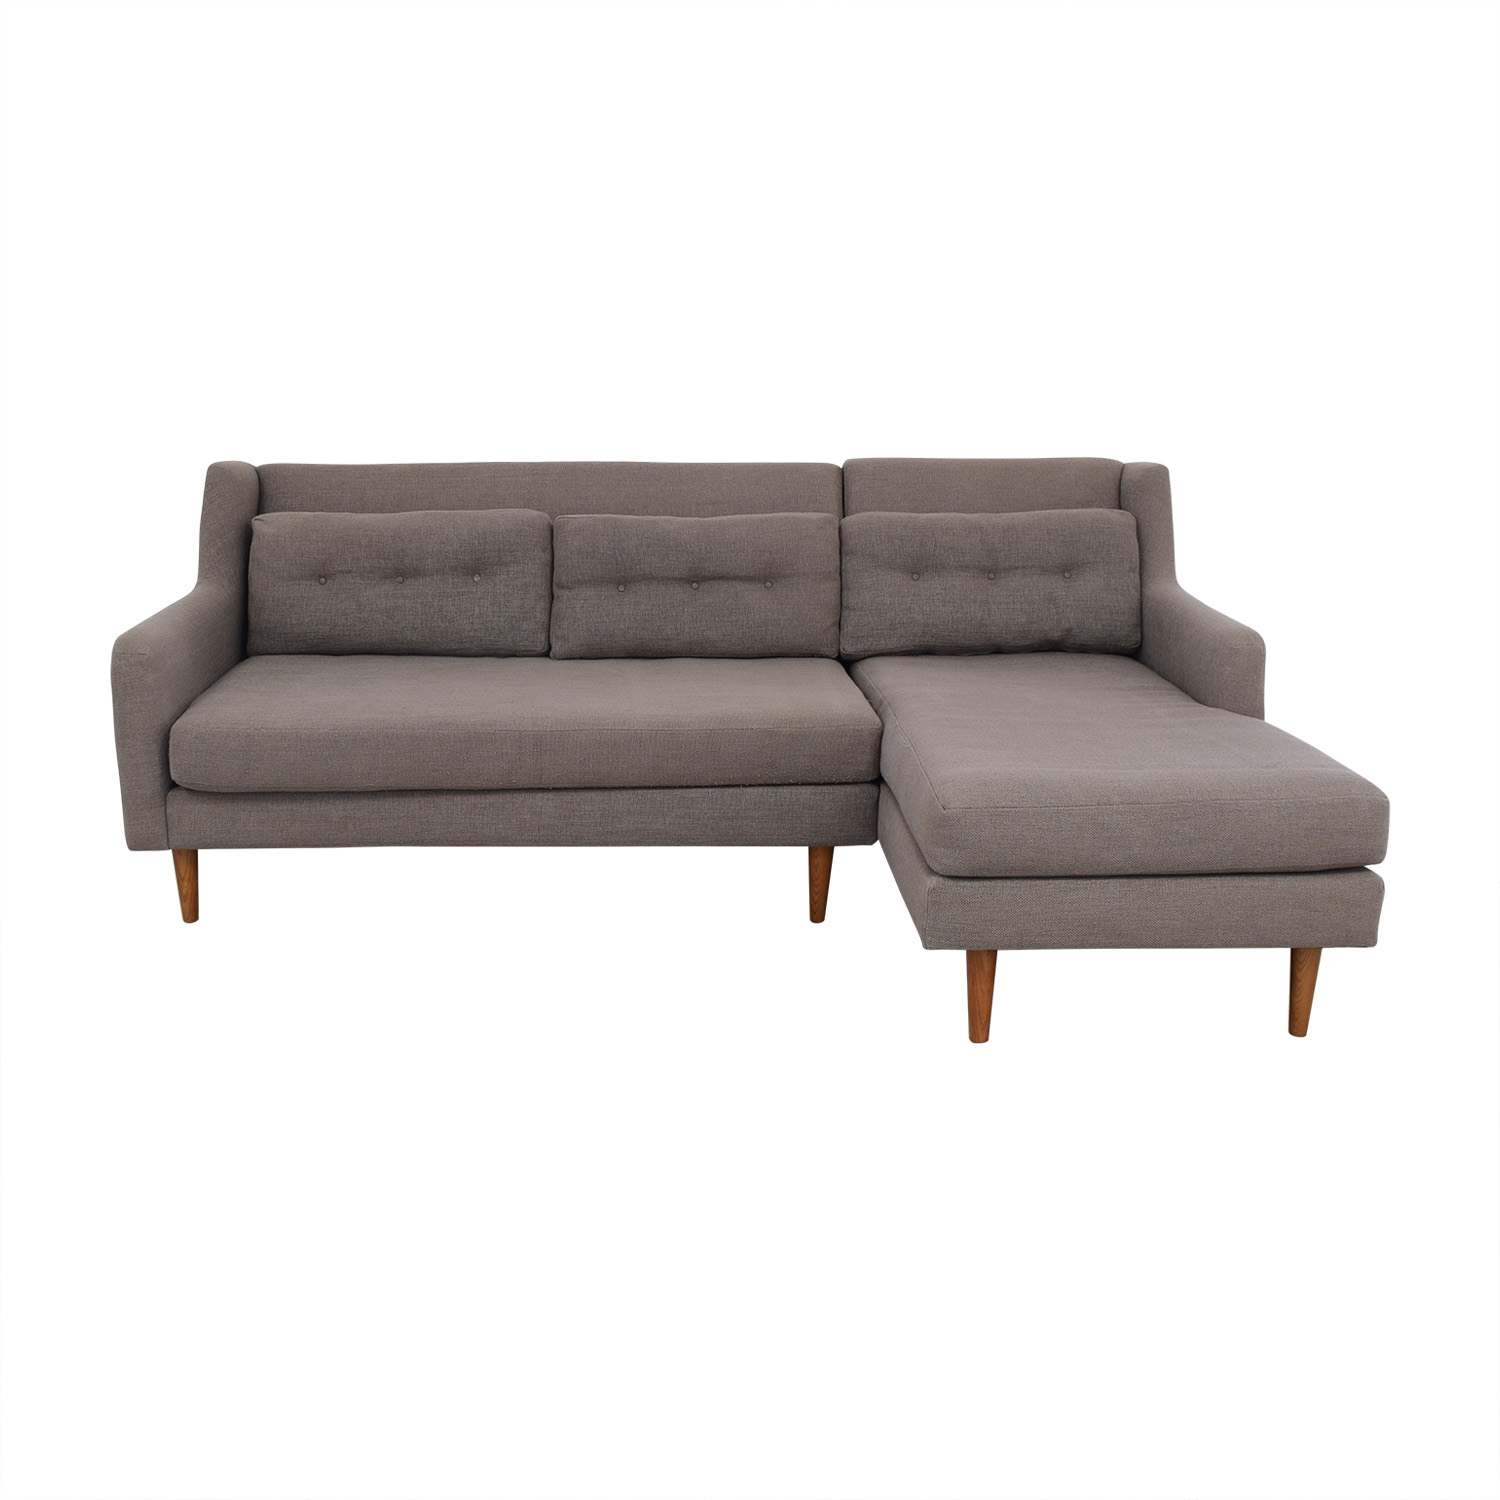 West Elm West Elm Crosby Mid Century Sectional Sofa with Chaise discount